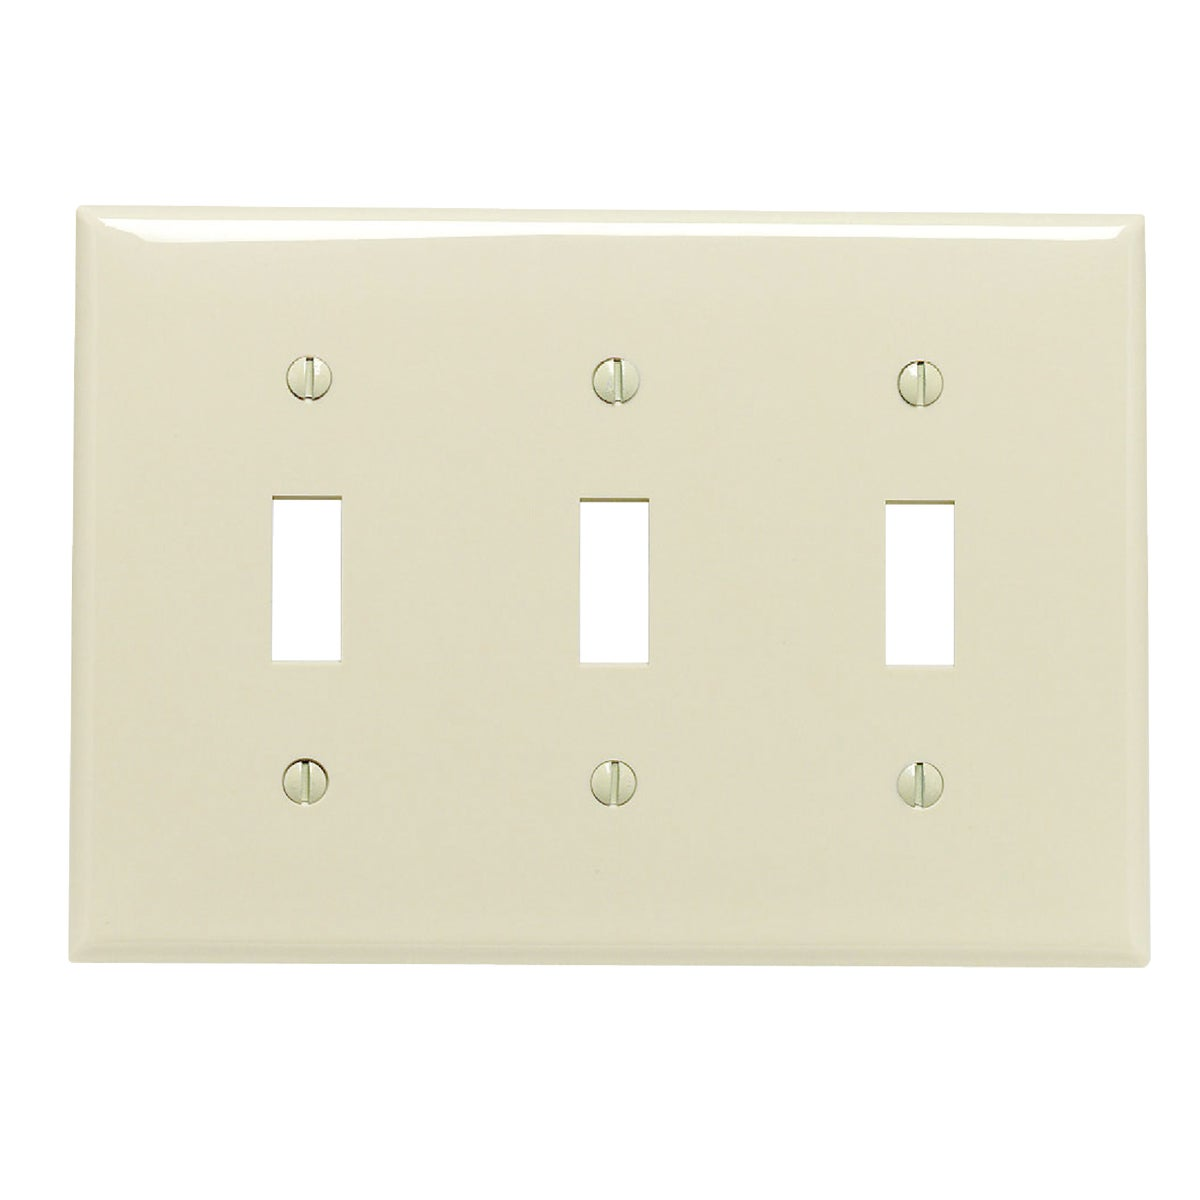 IV 3-TOGGLE WALL PLATE - 80711I by Leviton Mfg Co